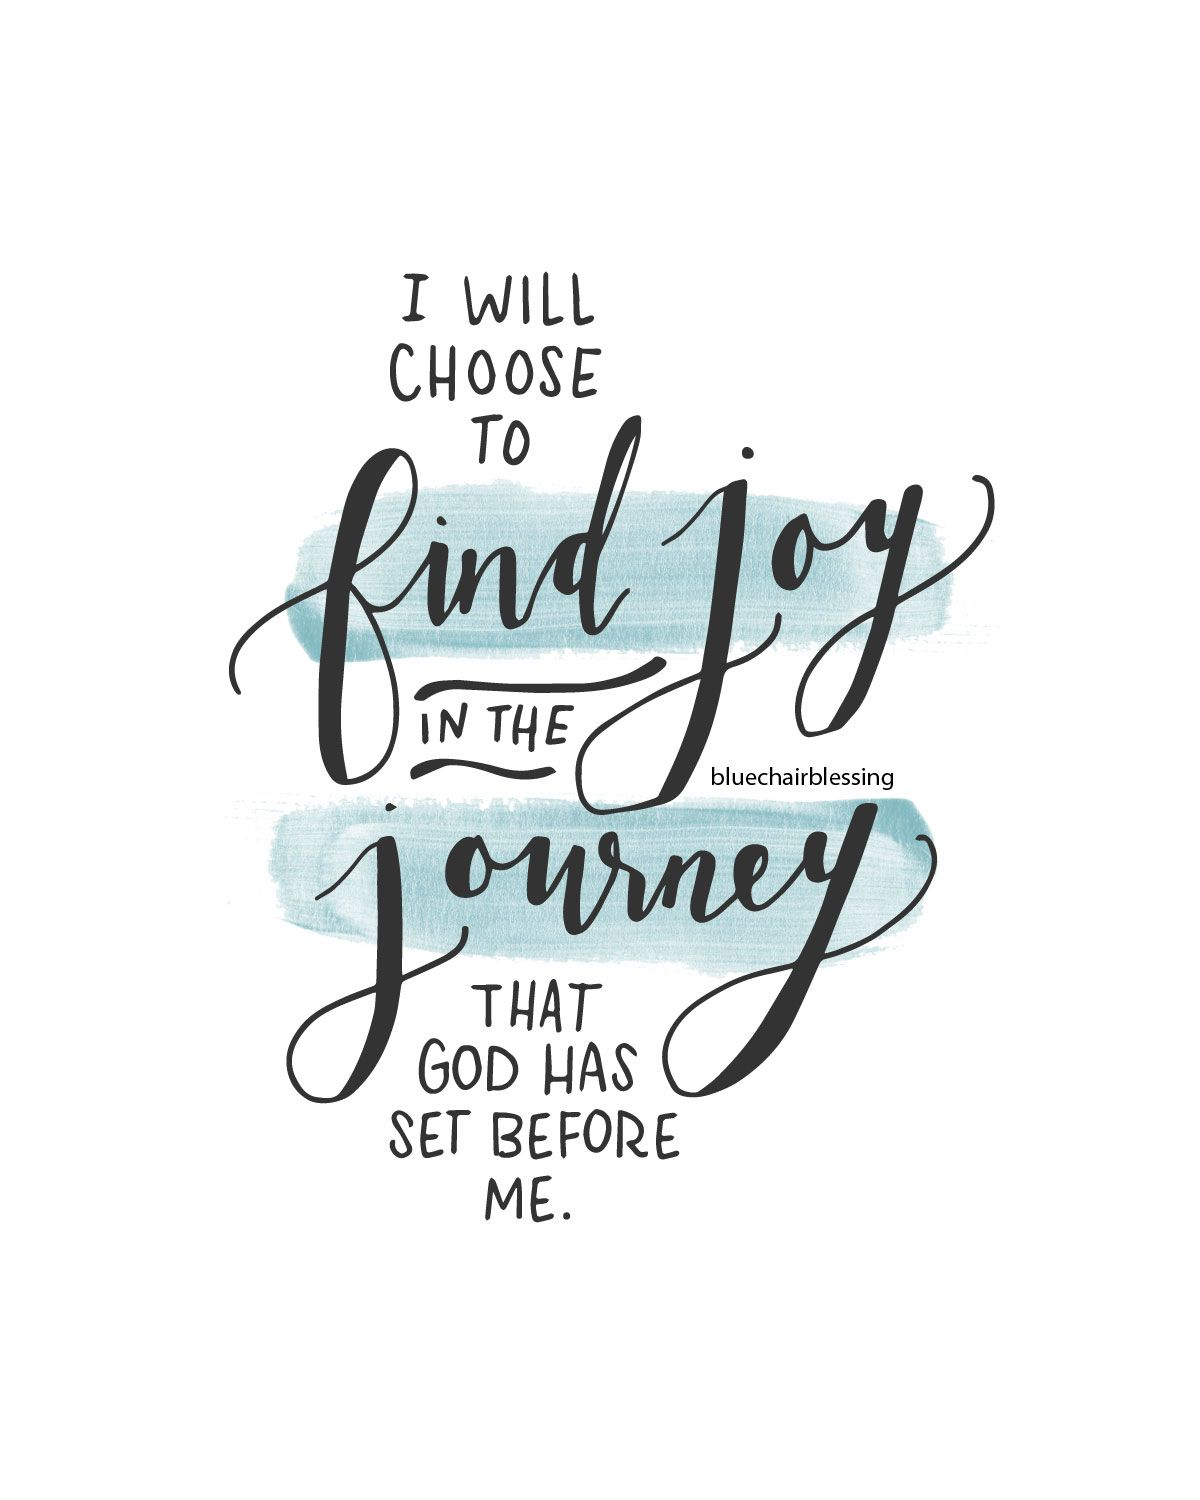 Stunning Designs That Changed The Way We Look At Things: I Will Choose To Find Joy In The Journey That God Has Set